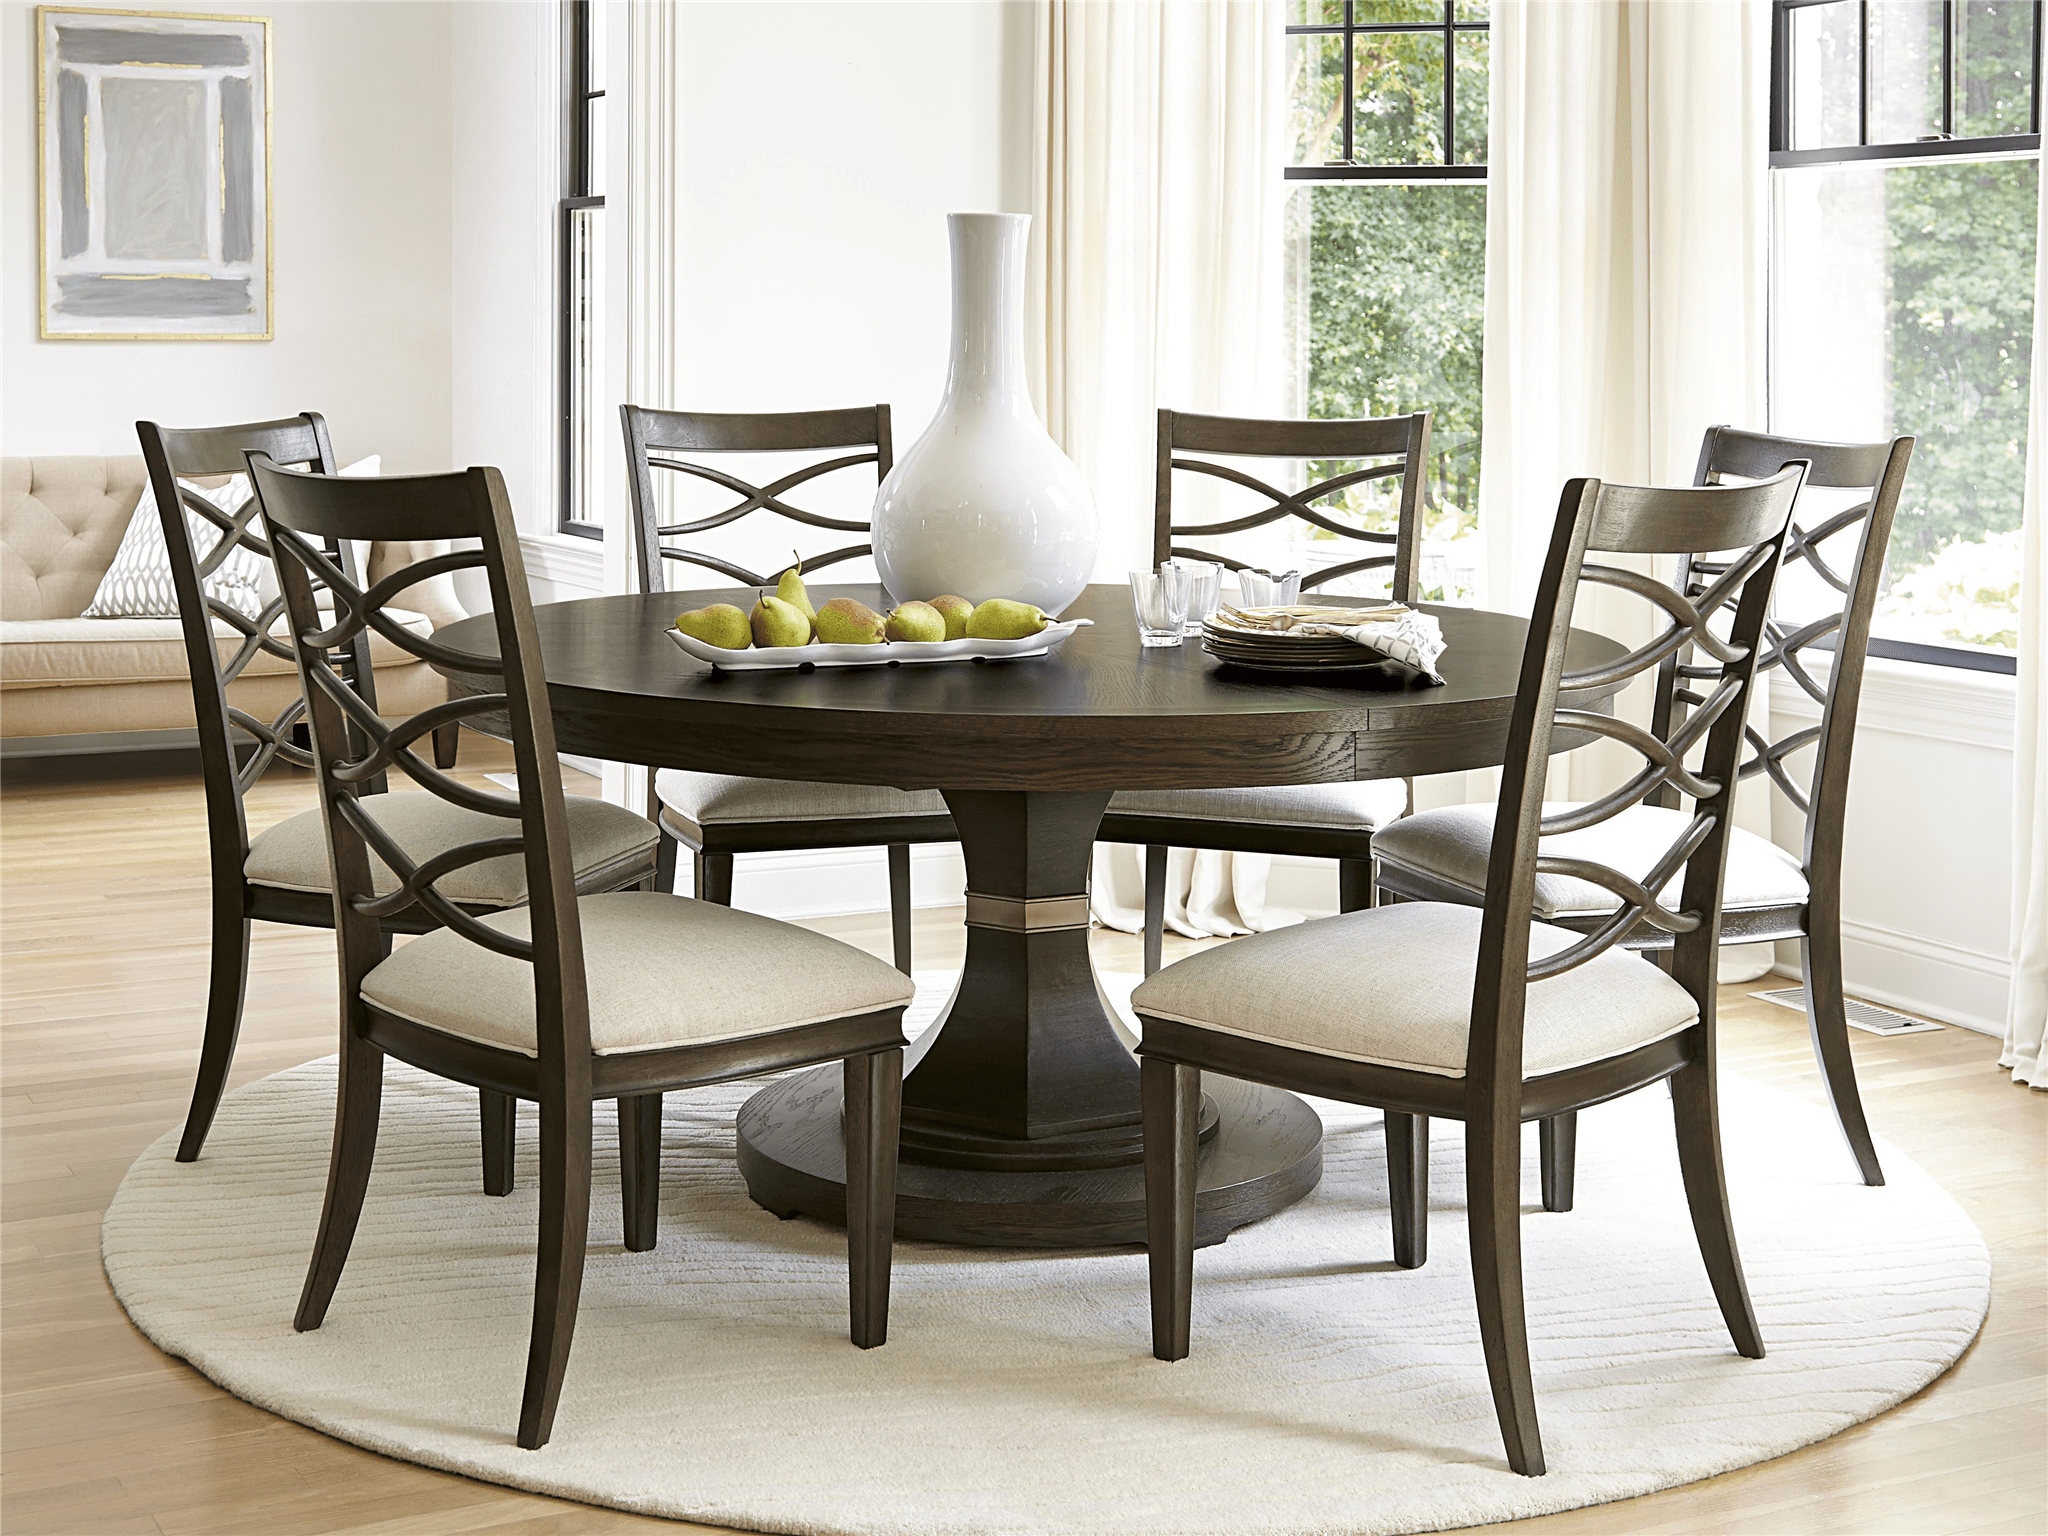 round dining table 1 kitchen table and chairs